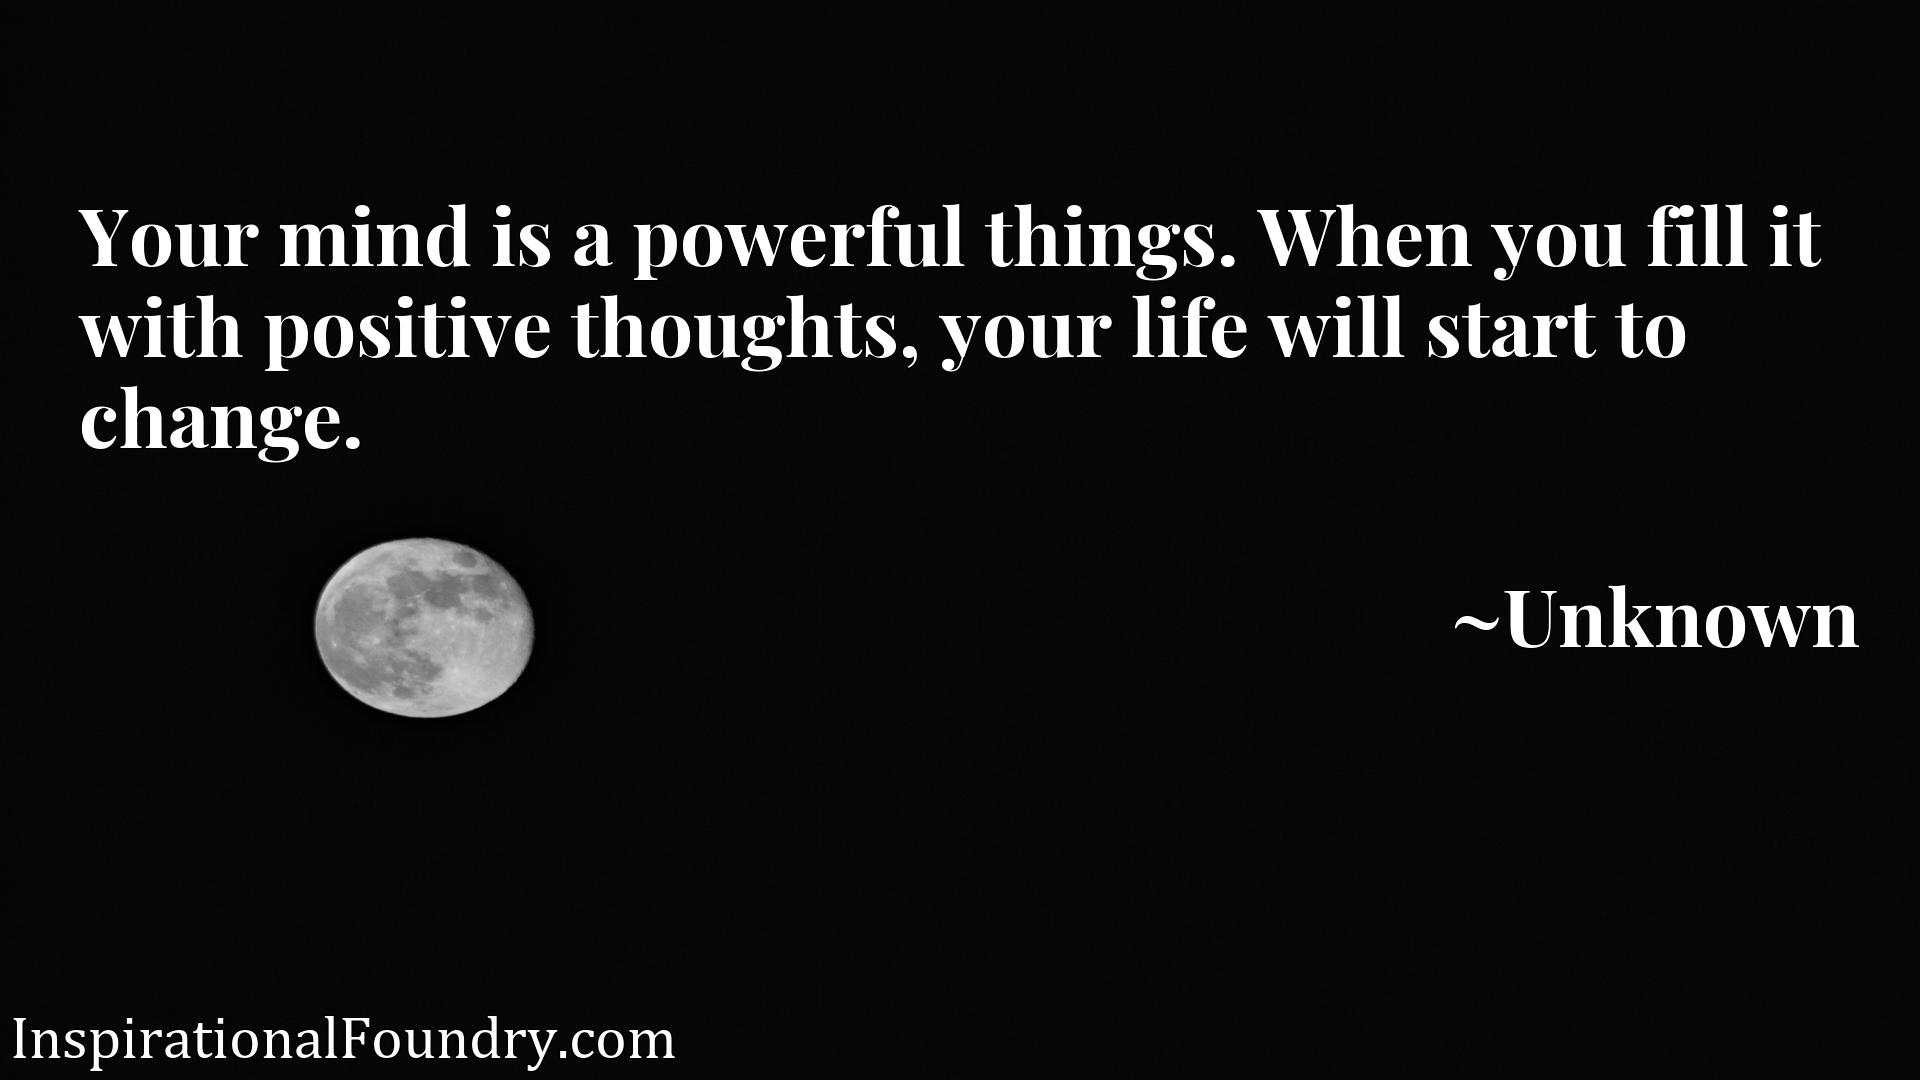 Your mind is a powerful things. When you fill it with positive thoughts, your life will start to change.